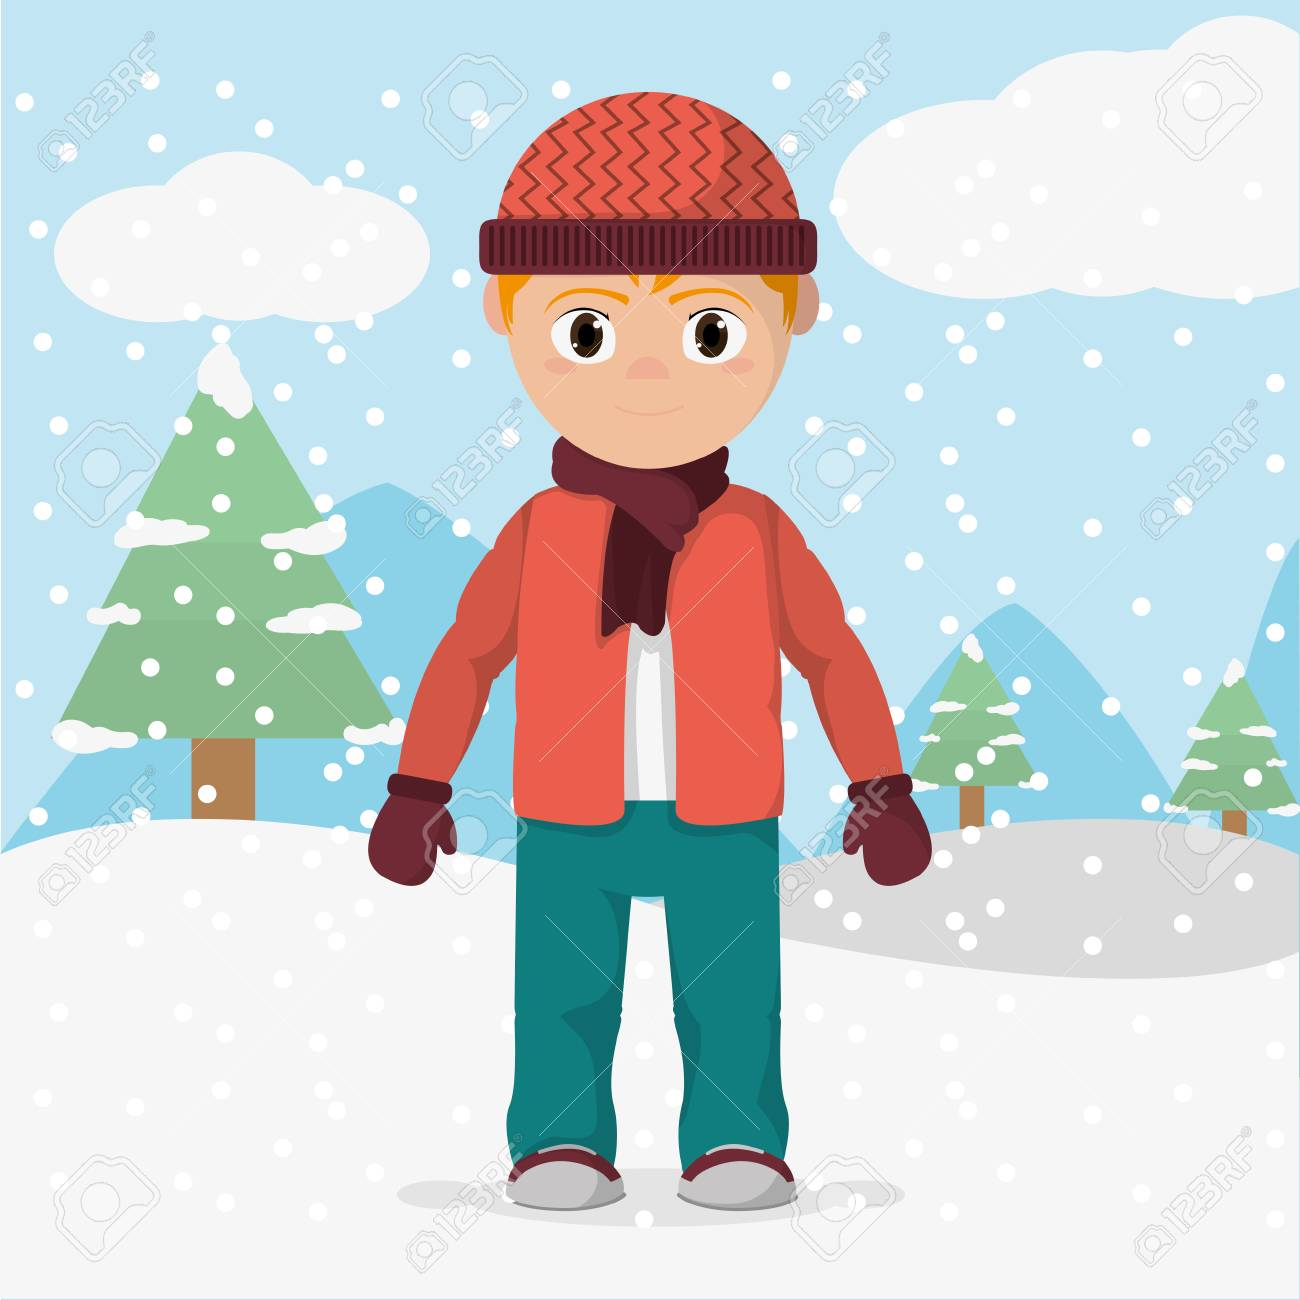 Boy with winter clothes and cold weather illustration..